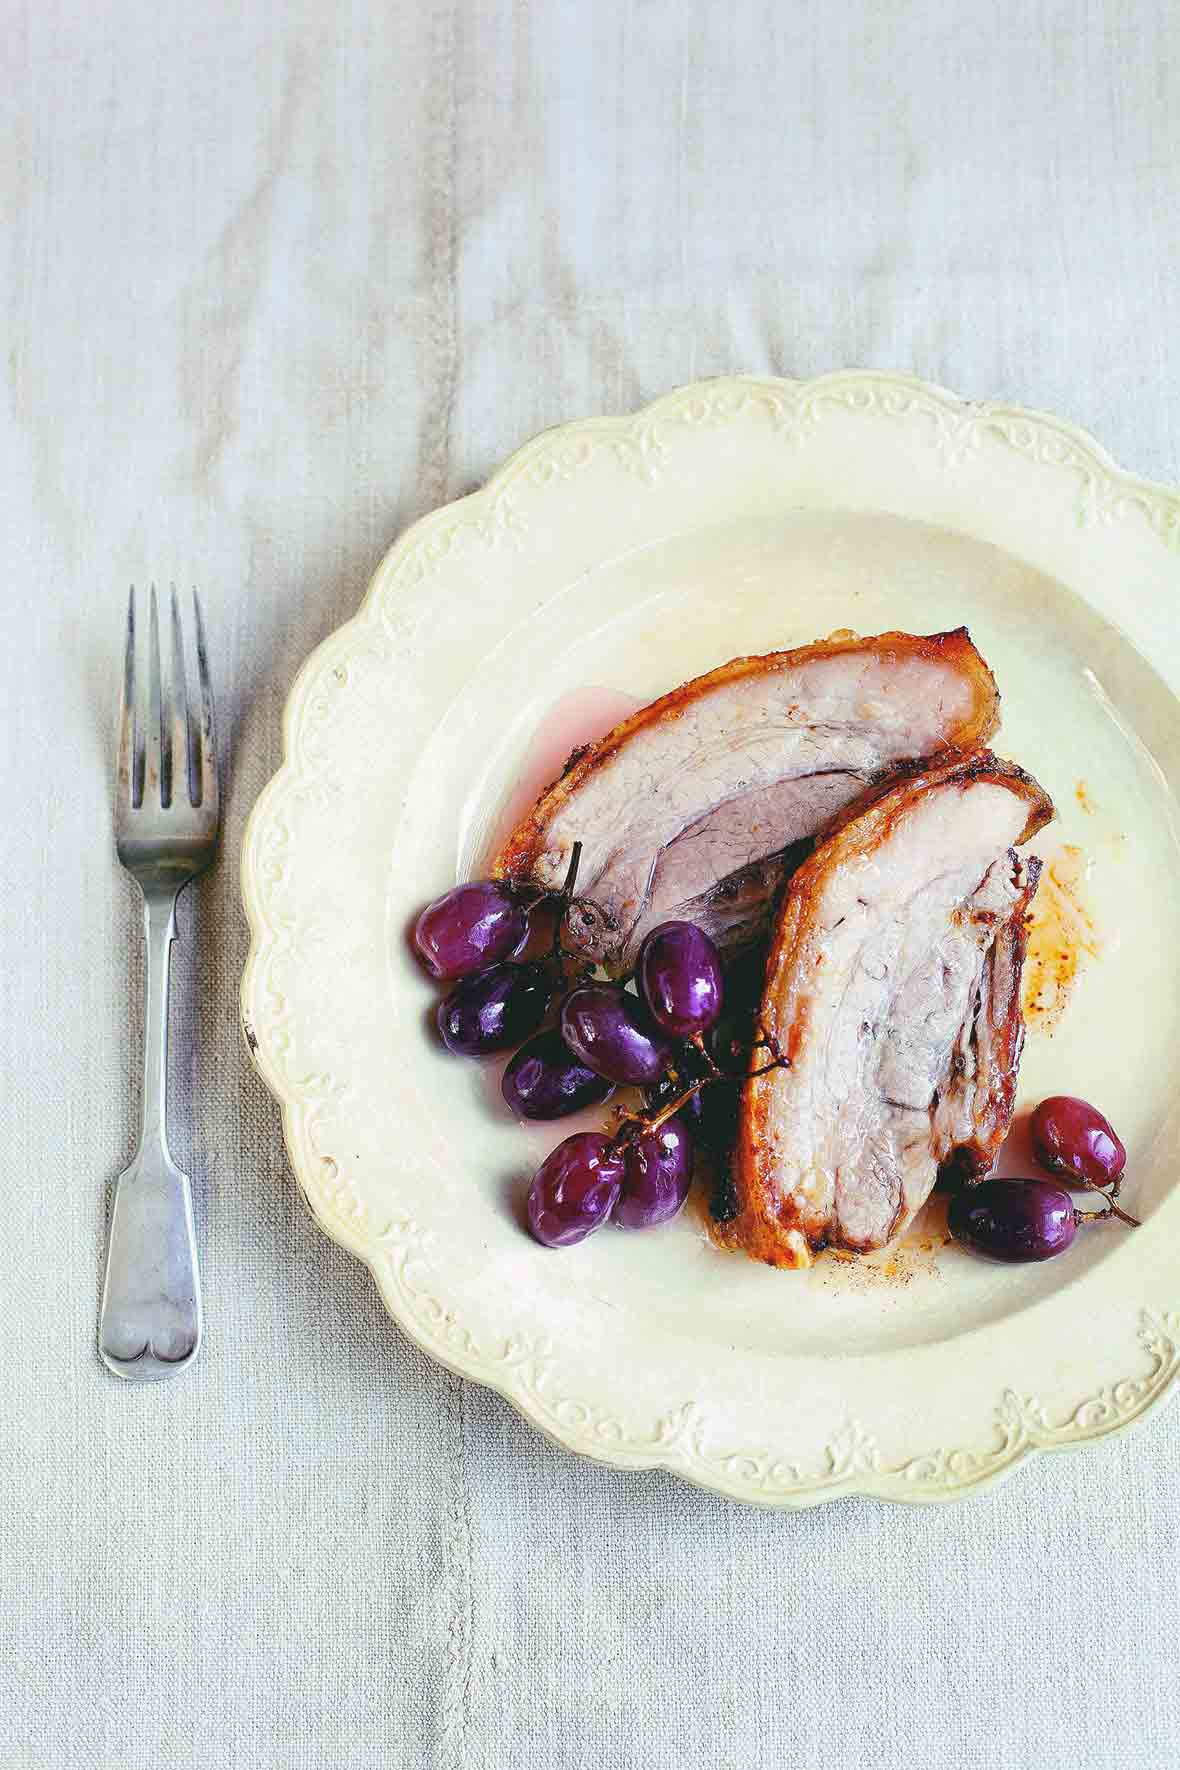 A decorative plate with two slices of roast pork and three bunches of pickled grapes.